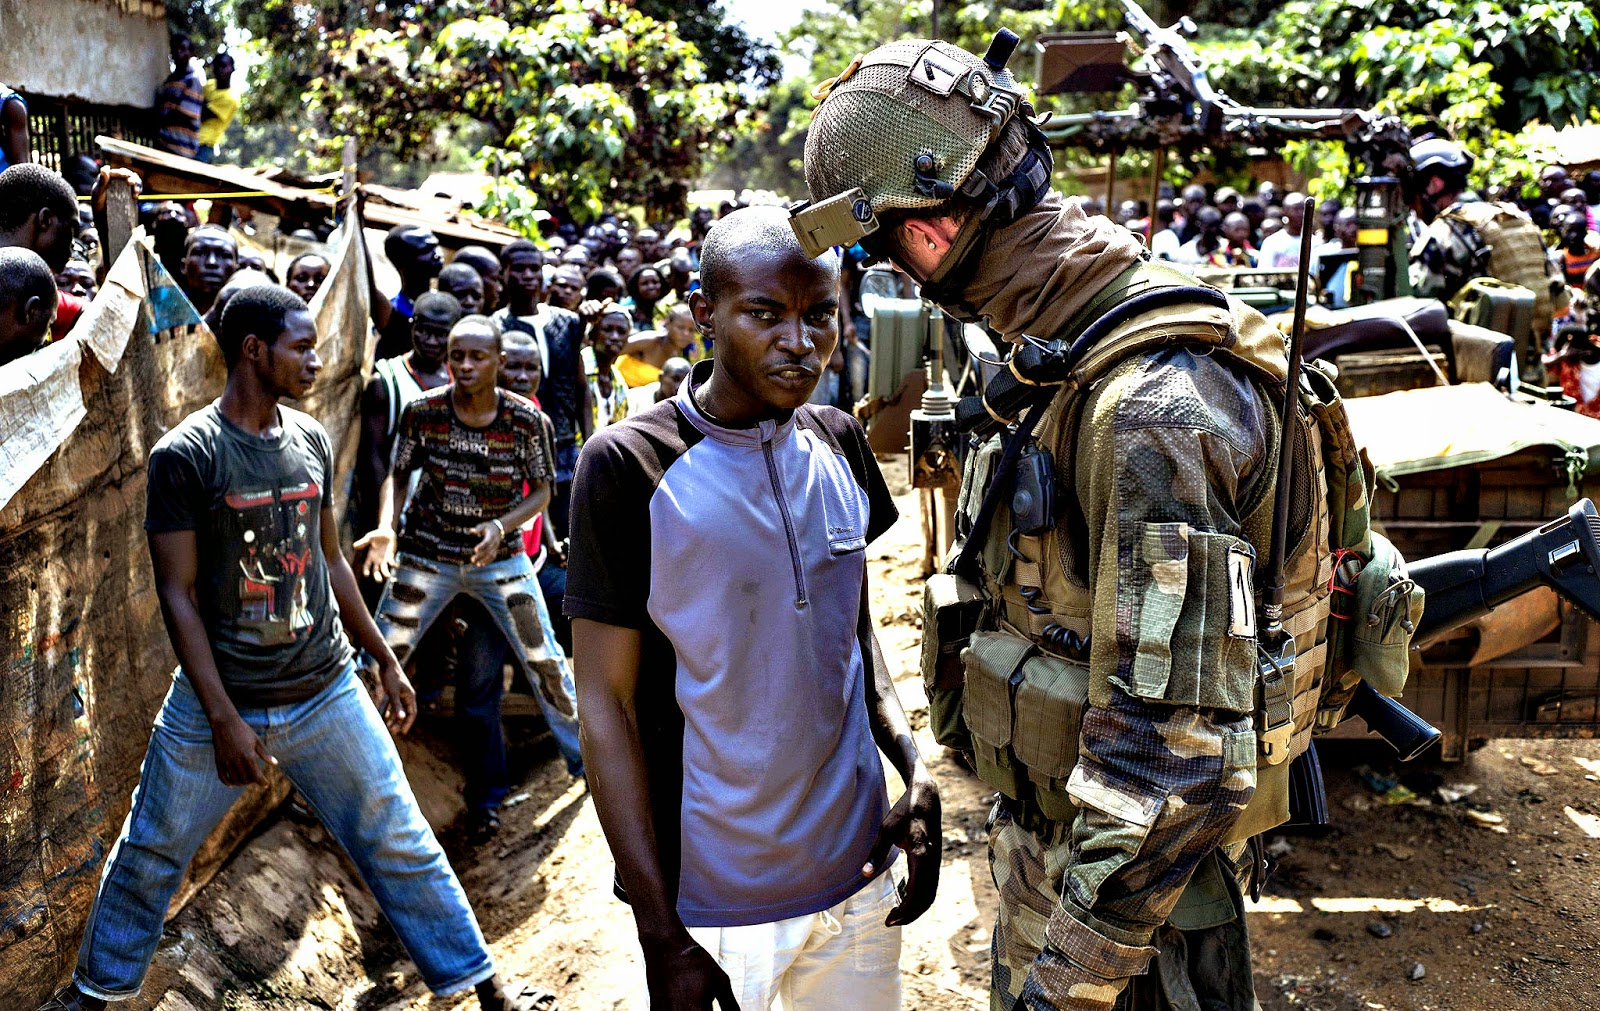 Africa french military investigating central child abuse allegations